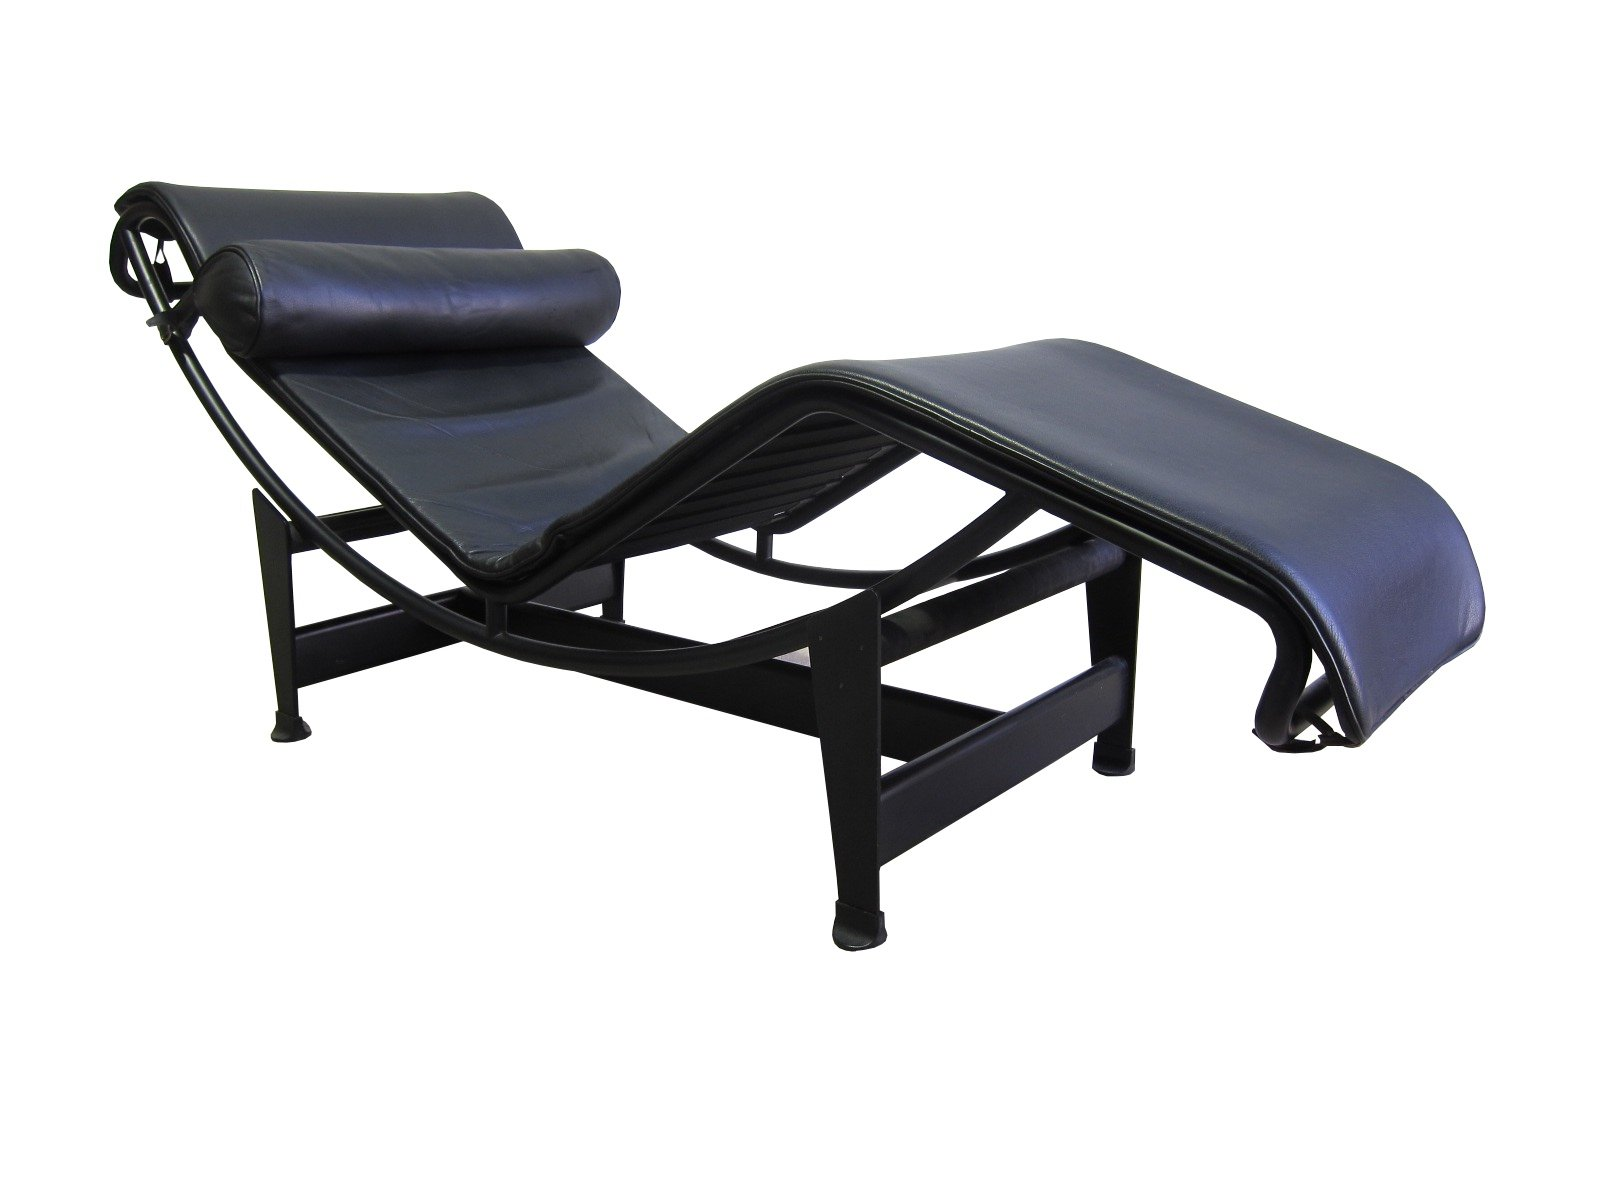 vintage lc4 chaise lounge by le corbusier for cassina. Black Bedroom Furniture Sets. Home Design Ideas